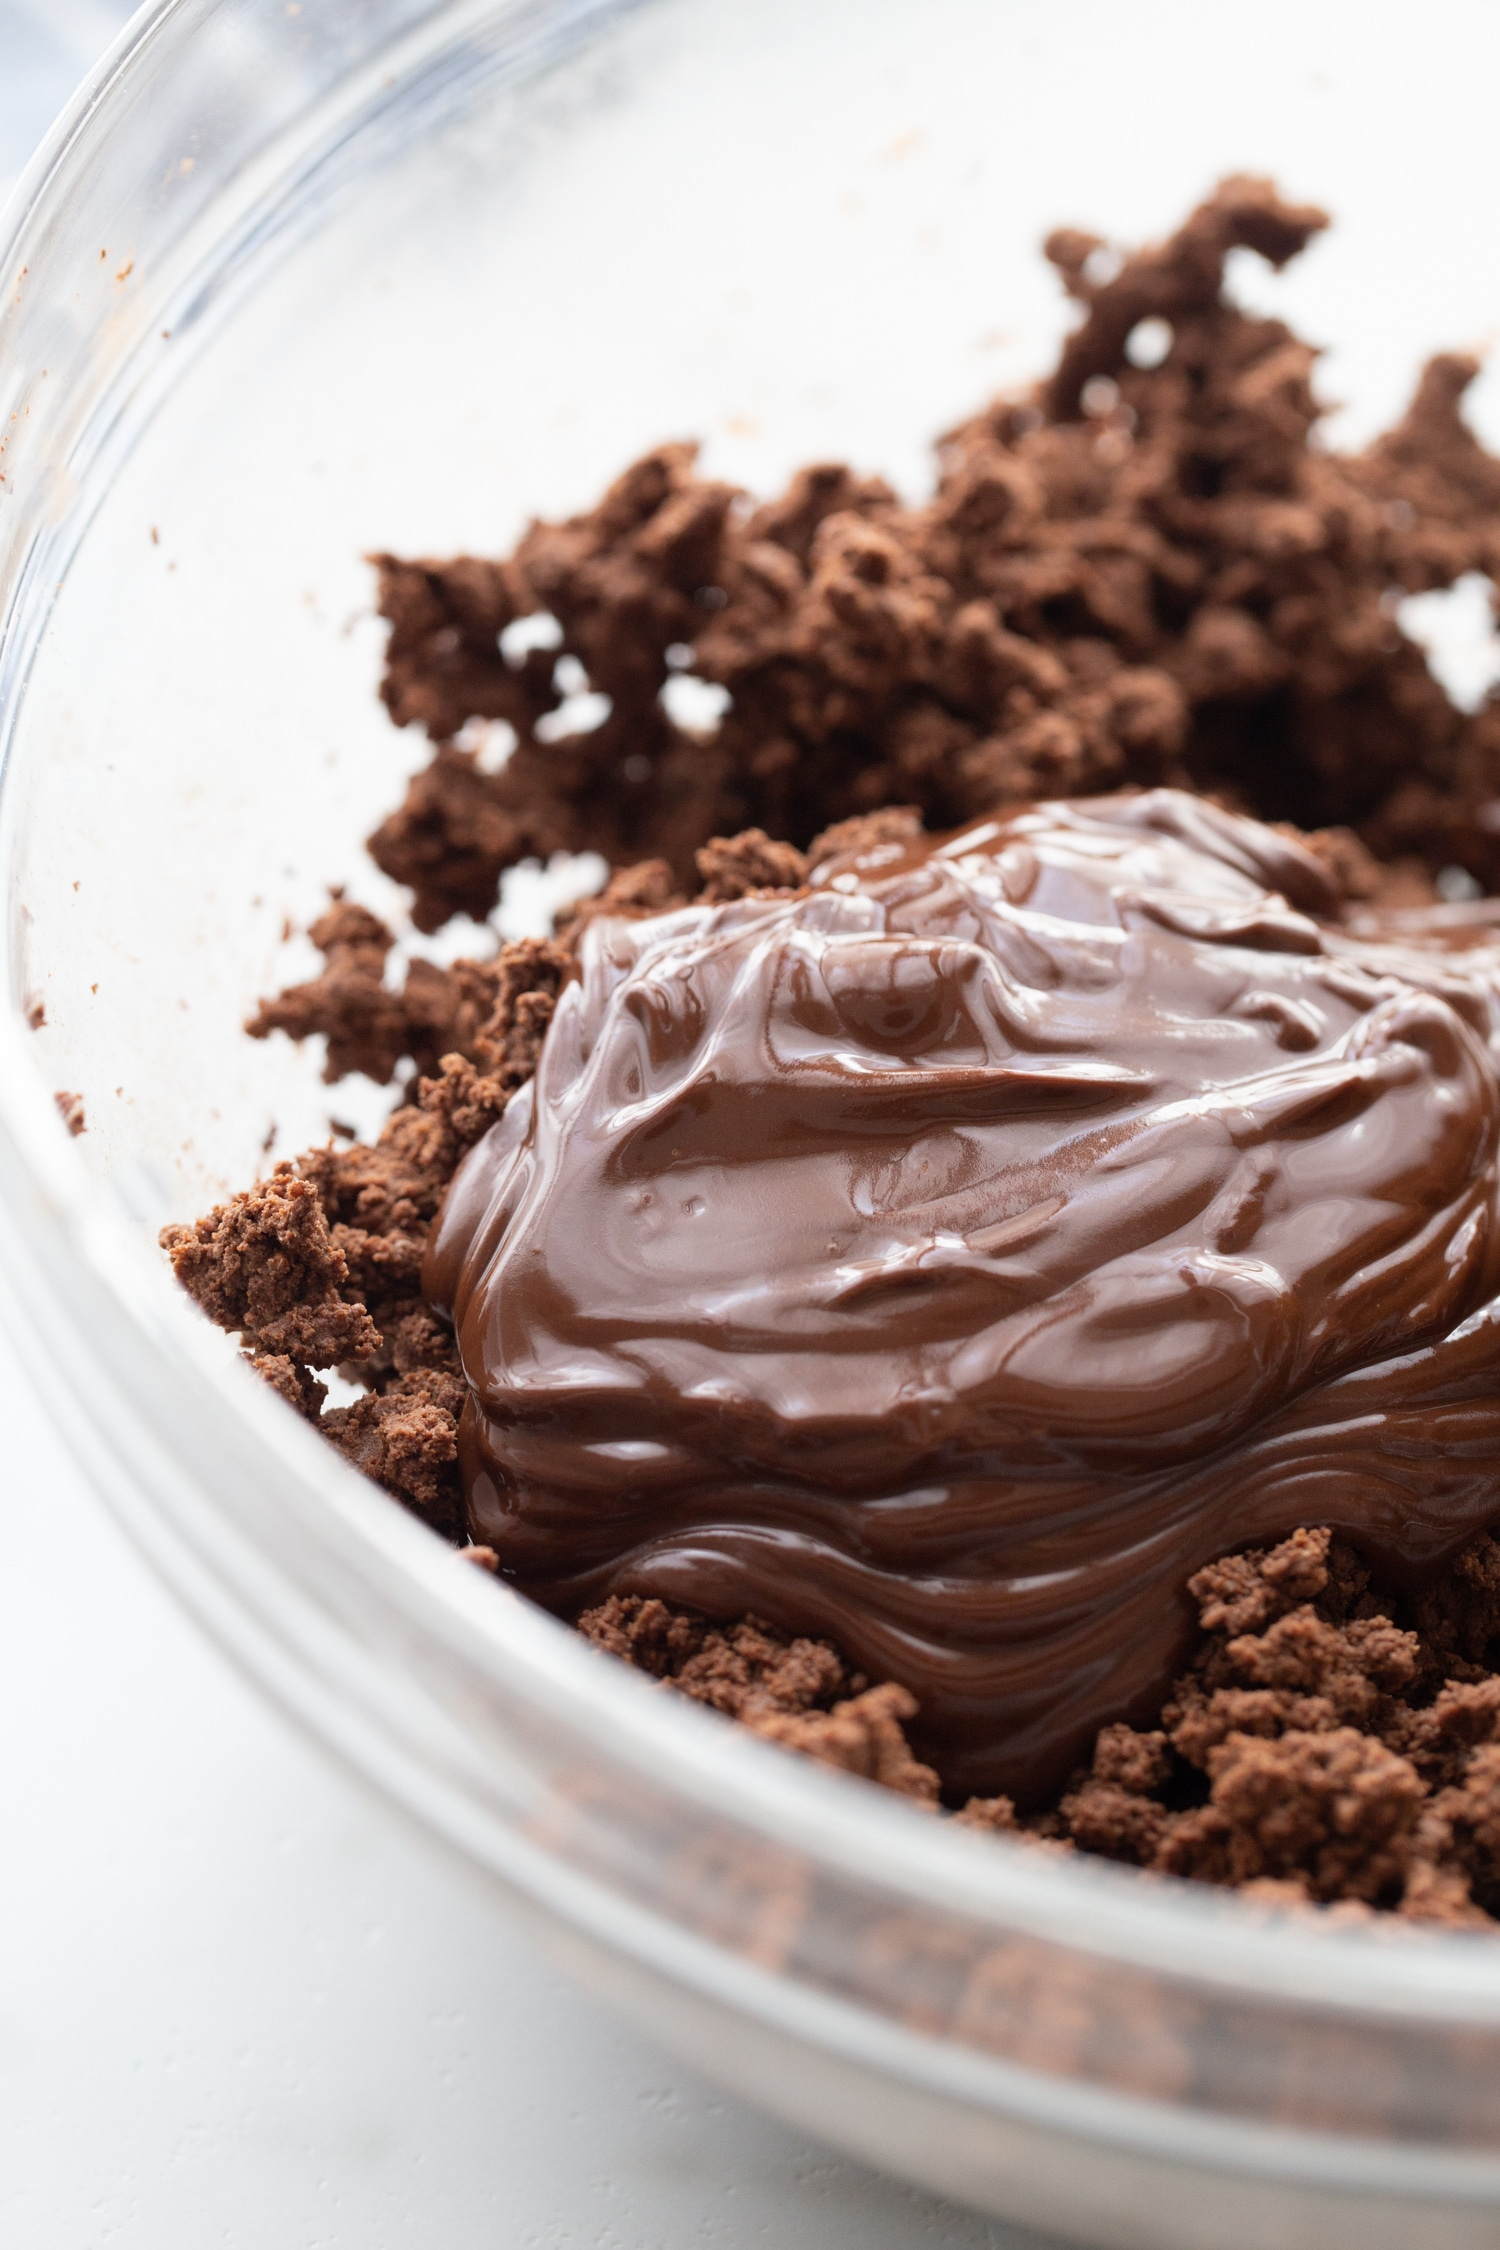 keto chocolate melted in a bowl with pie filling